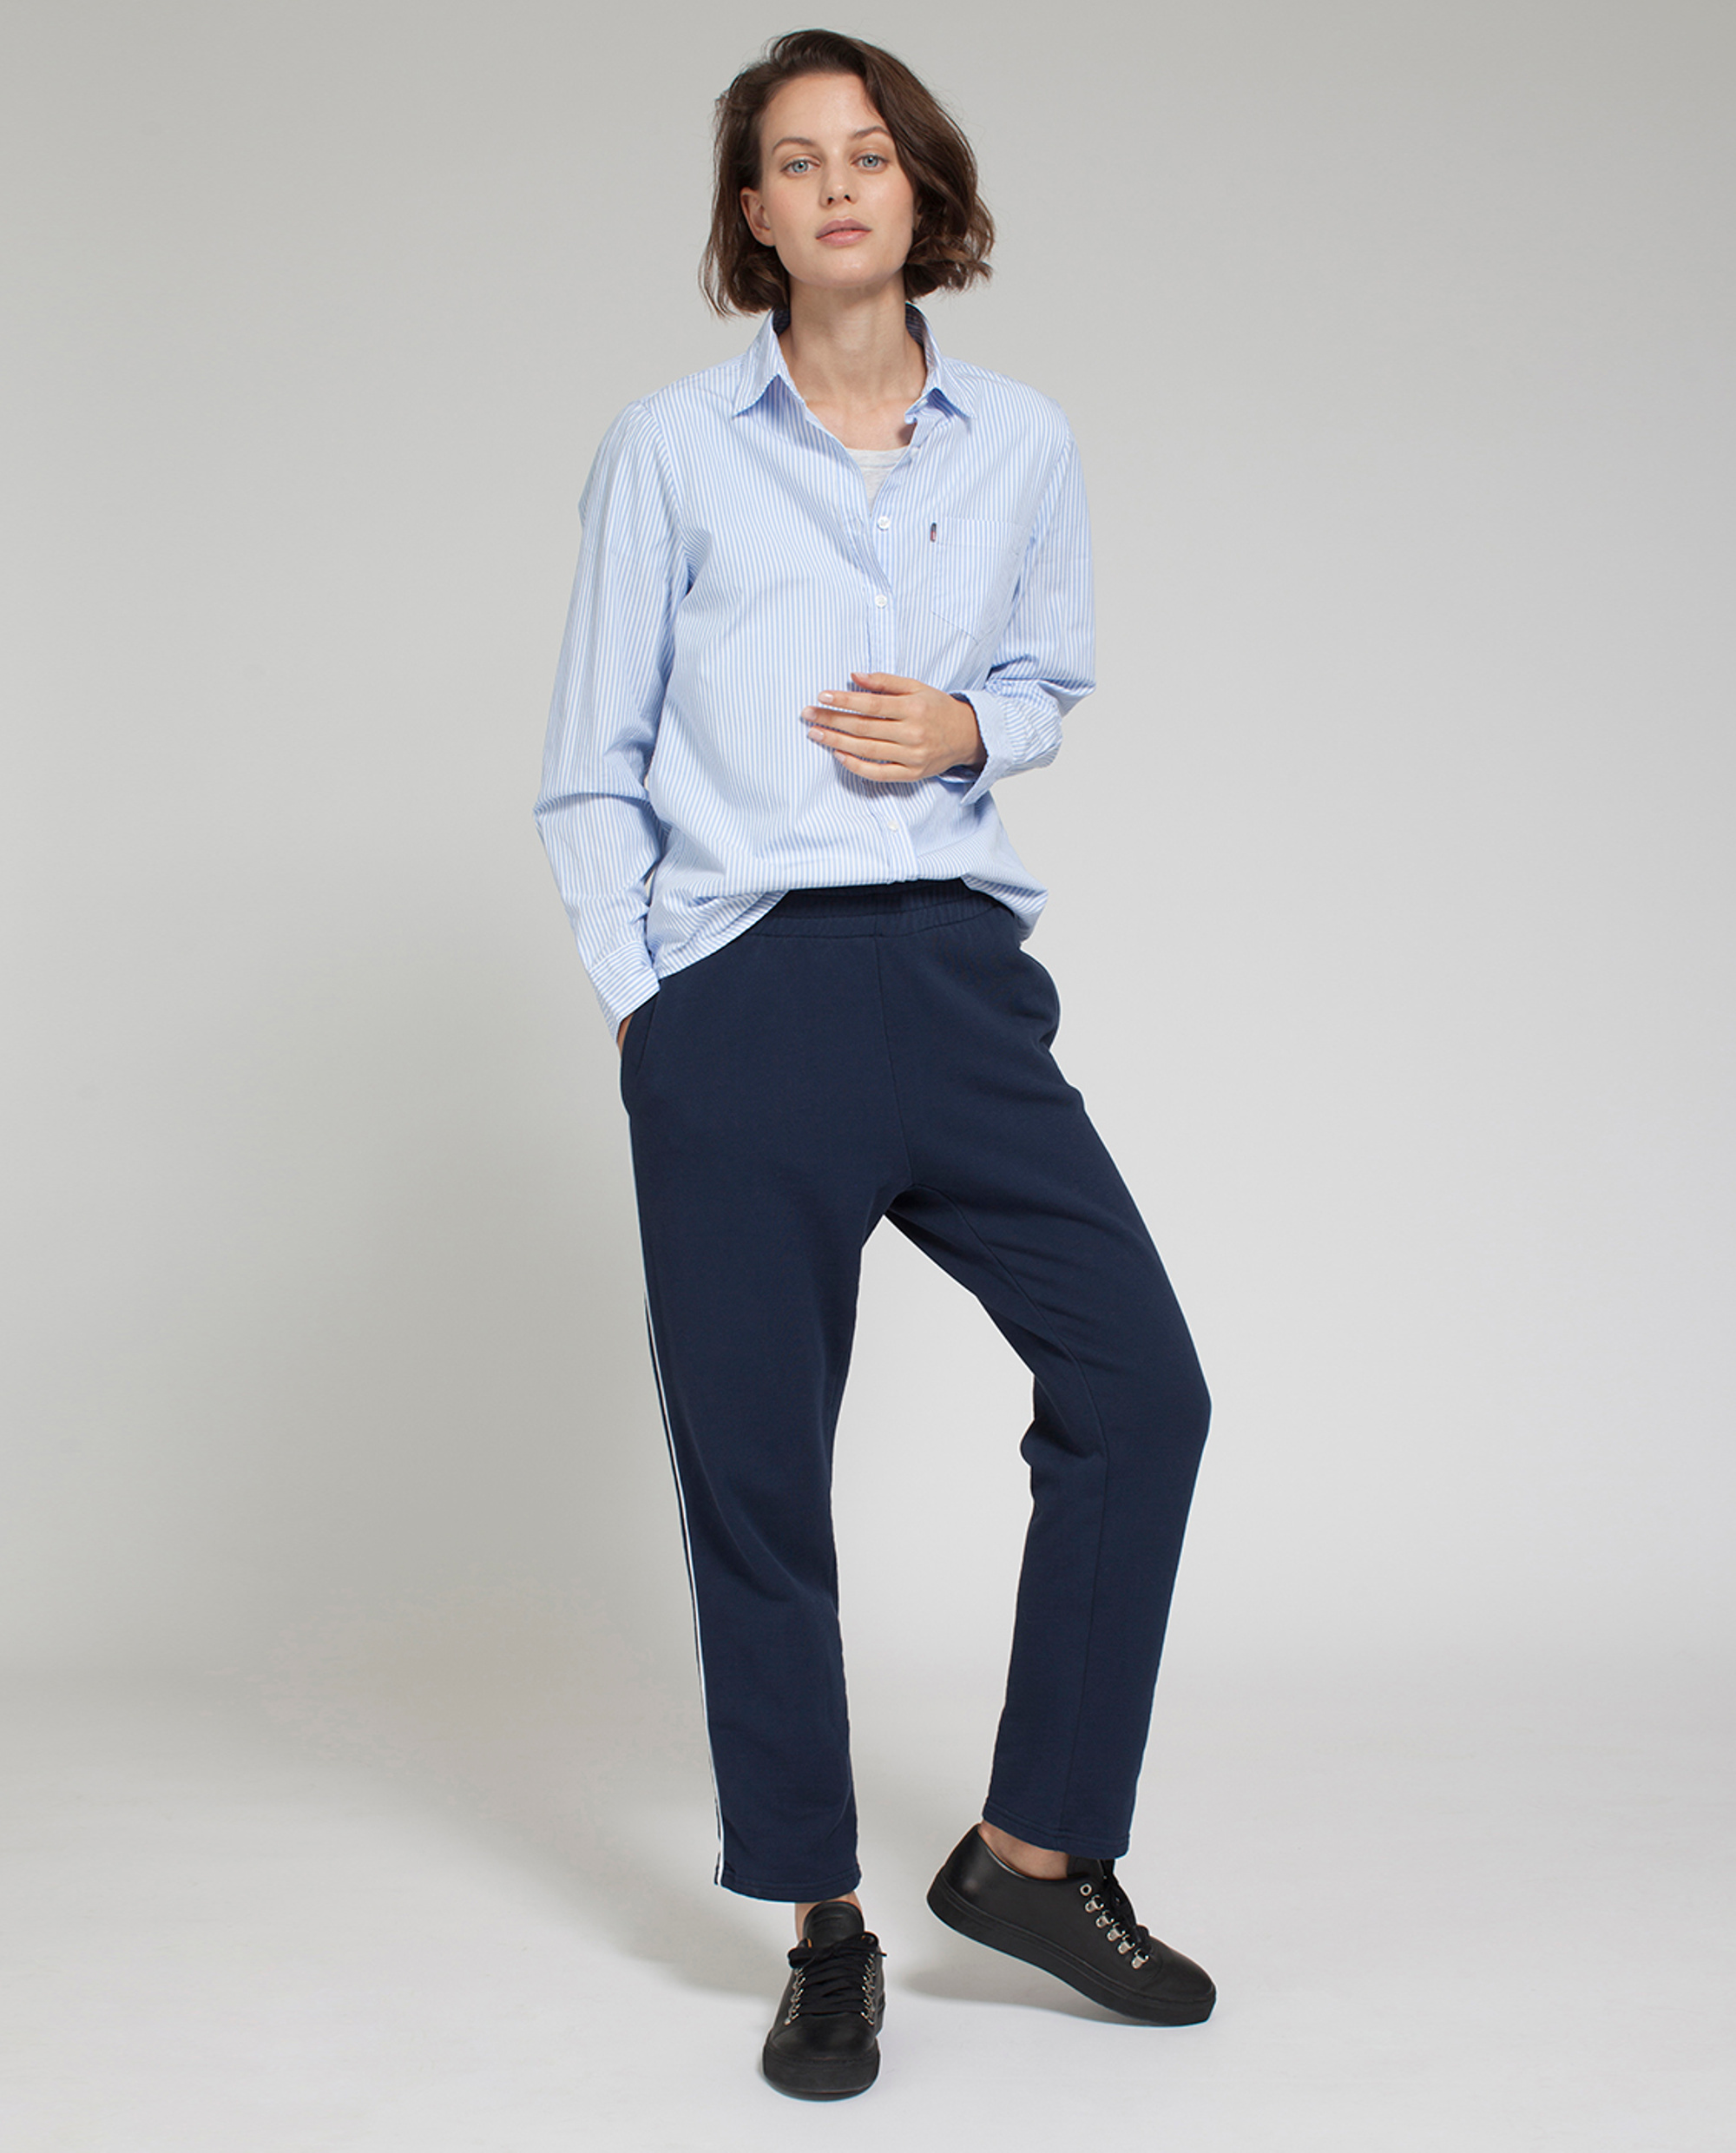 Emily Poplin Shirt, Blue/White